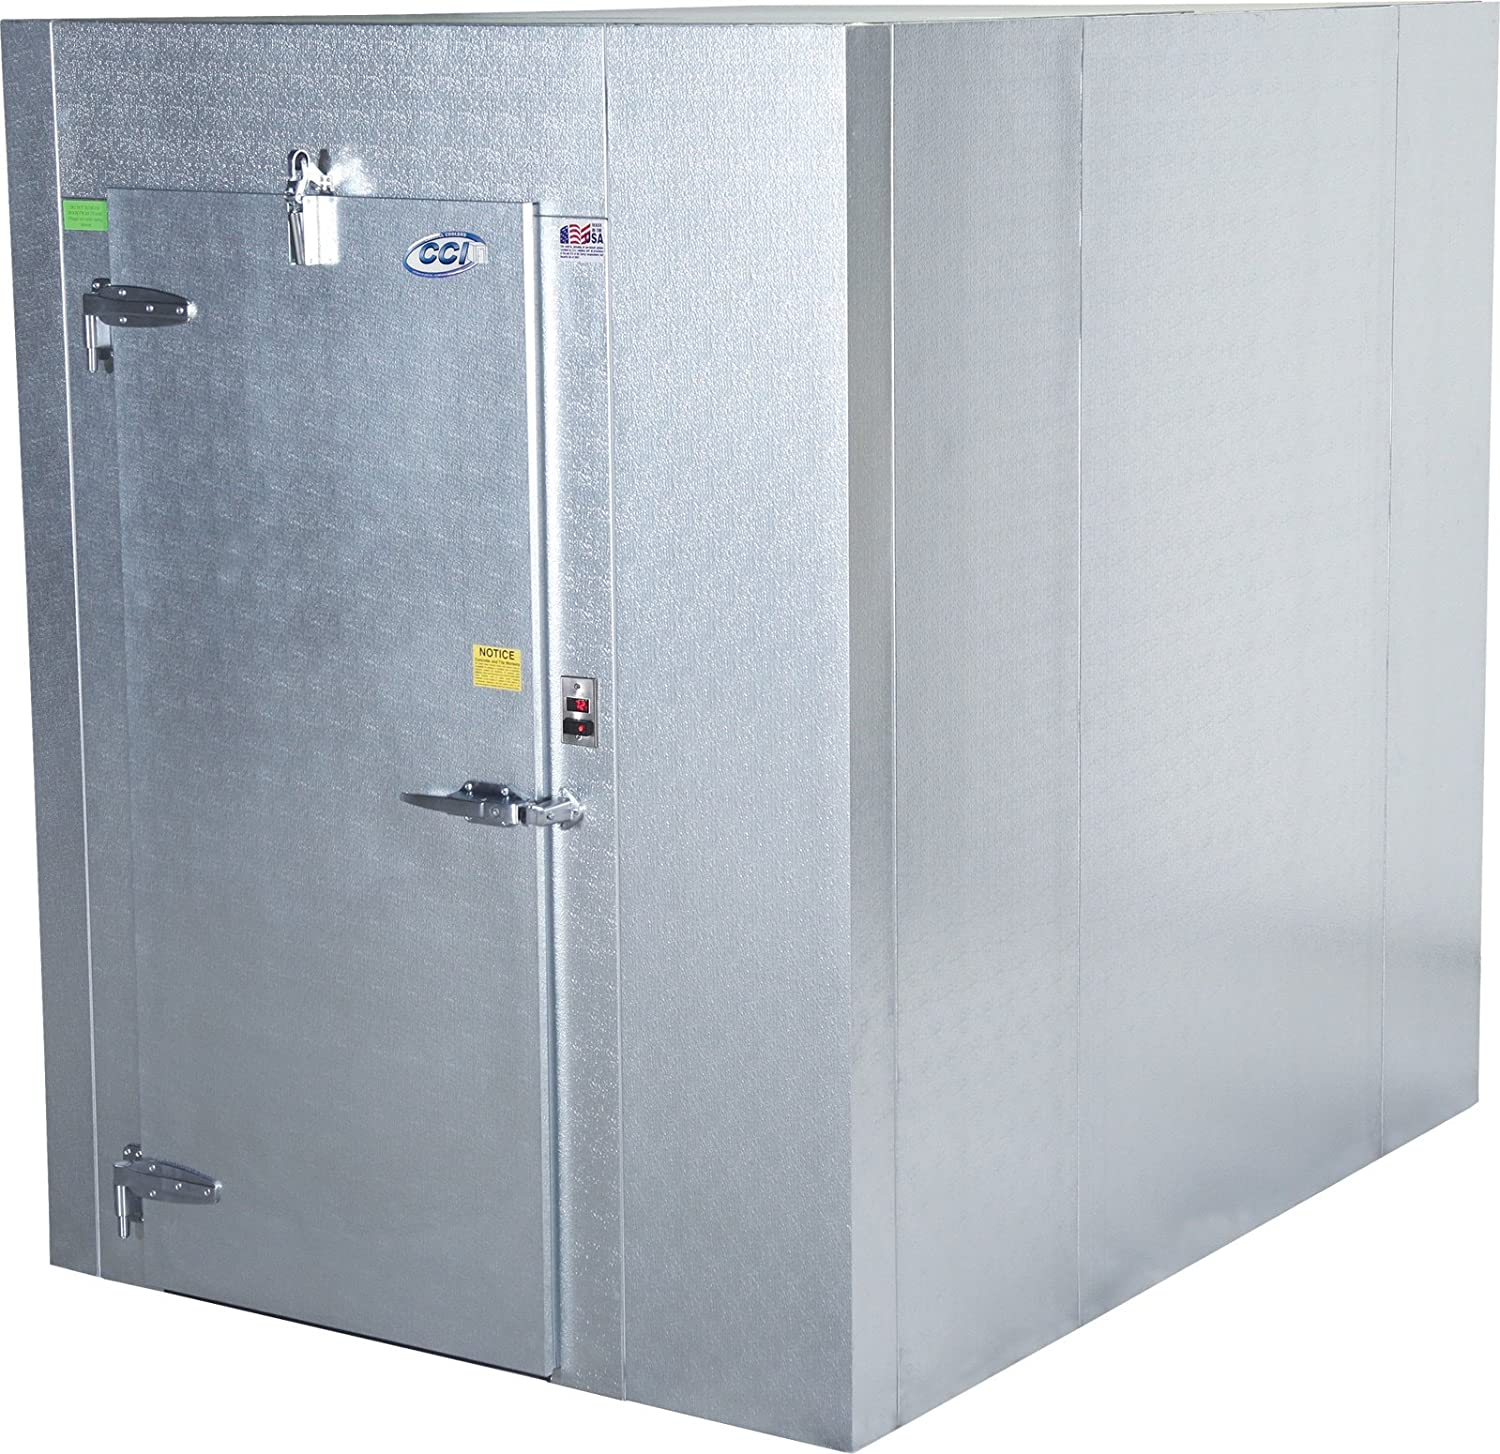 Carroll Coolers, W550408080-0101, Indoor Walk-in Freezer, Size in Feet: 8 Height, 8 Length, 8 Width, Includes Wire Shelving 81WPjKmpp4L._SL1500_